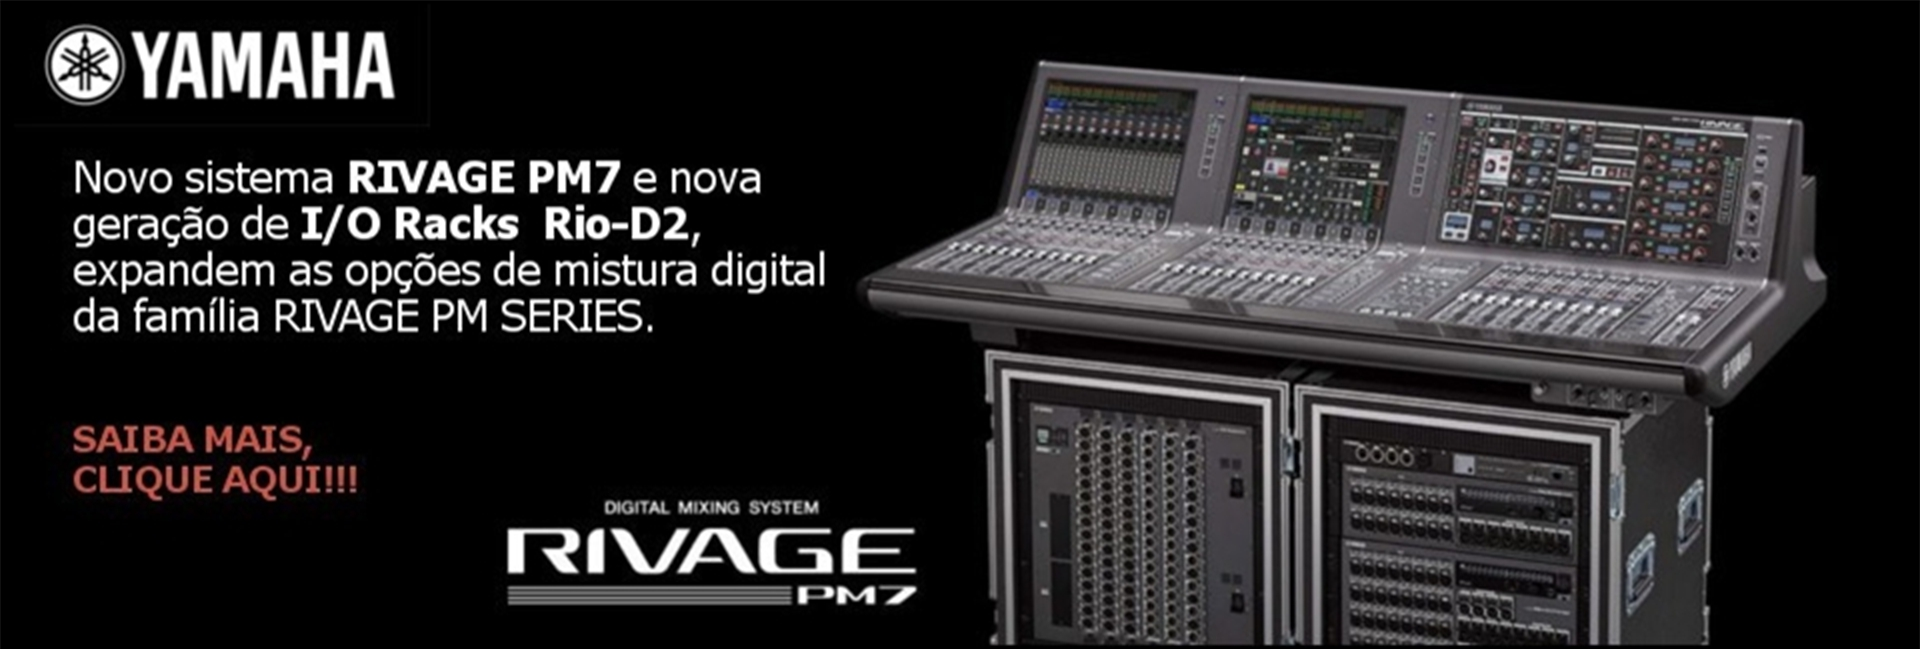 rivage_pm7_system_black__cpia